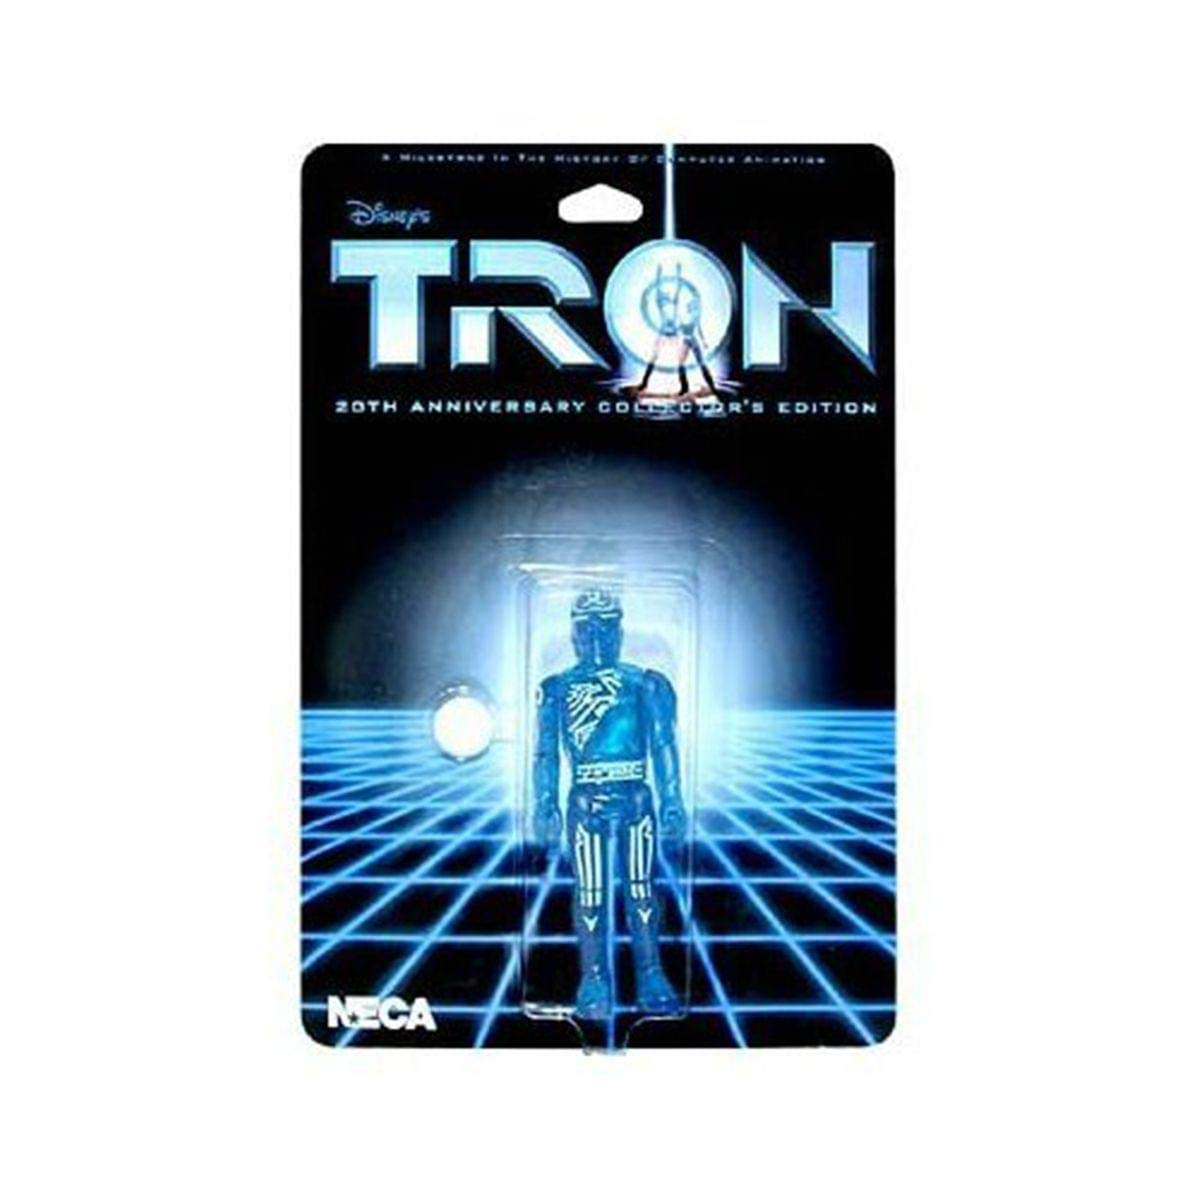 Tron FLYNN 4 Action Figure (20th Anniversary Collector's Edition) by Tron